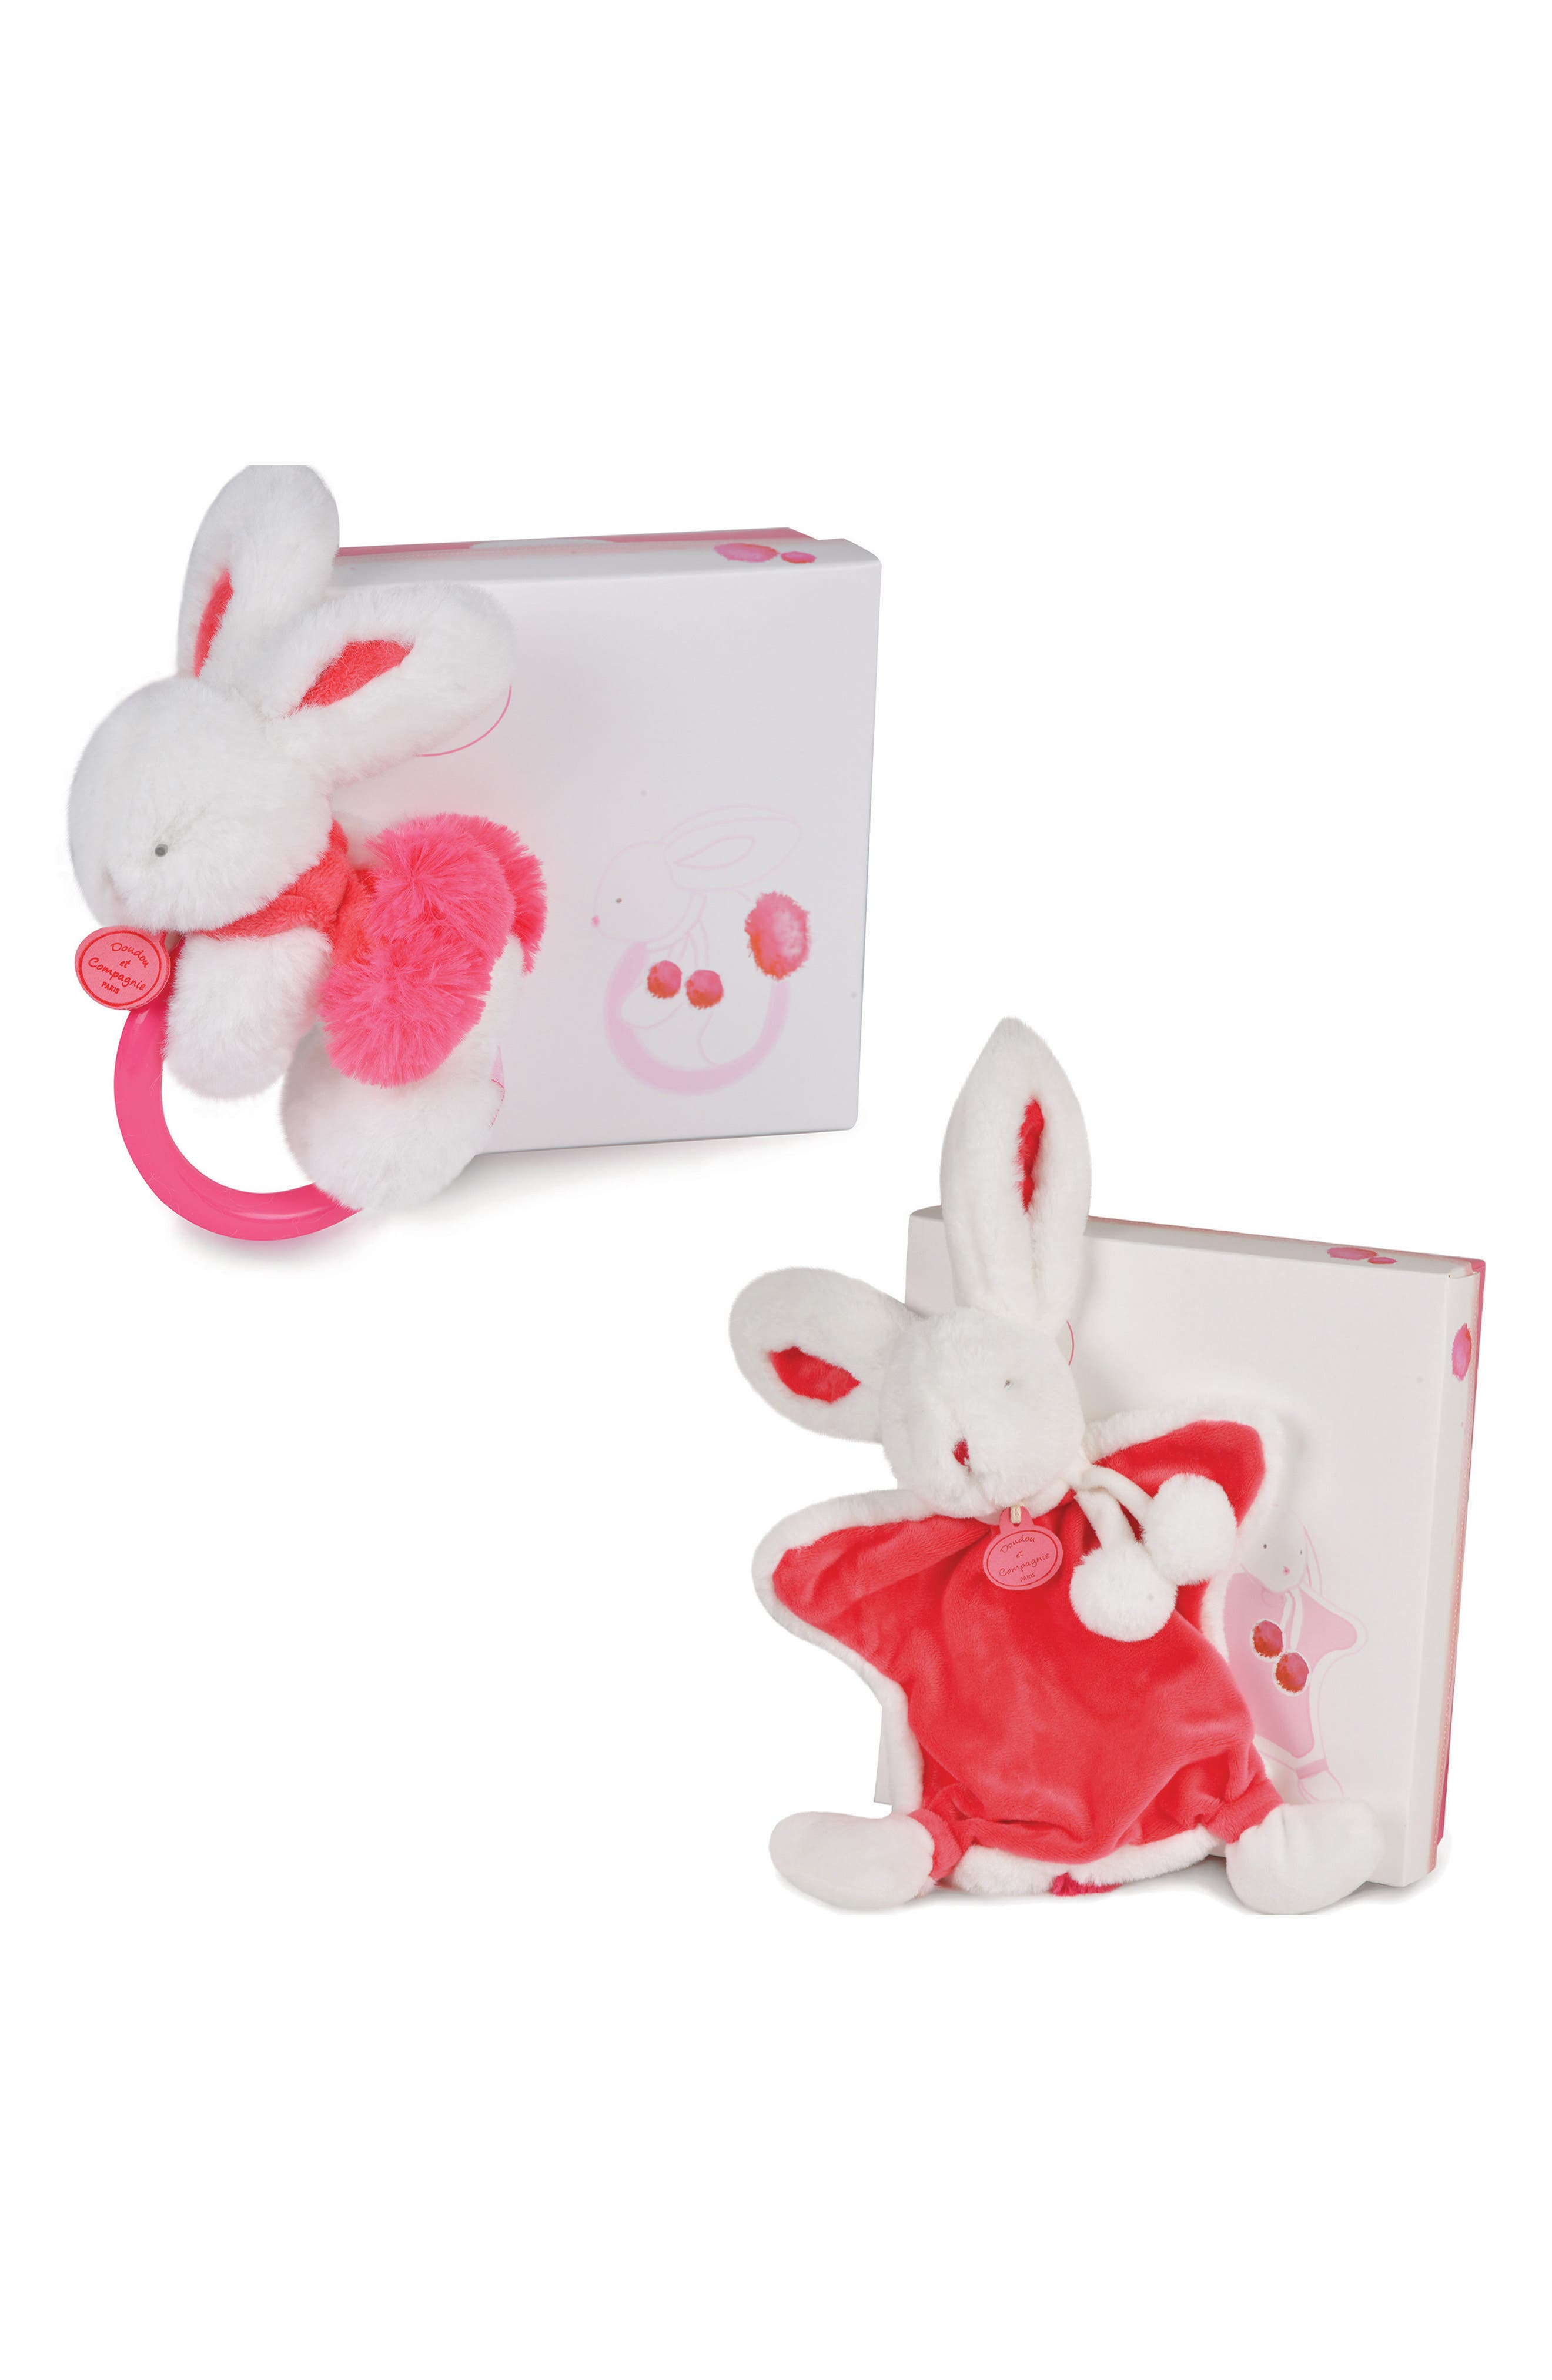 Strawberry Pink Bunny Rattle & Lovie Blanket Gift Set,                         Main,                         color, Strawberry Pink